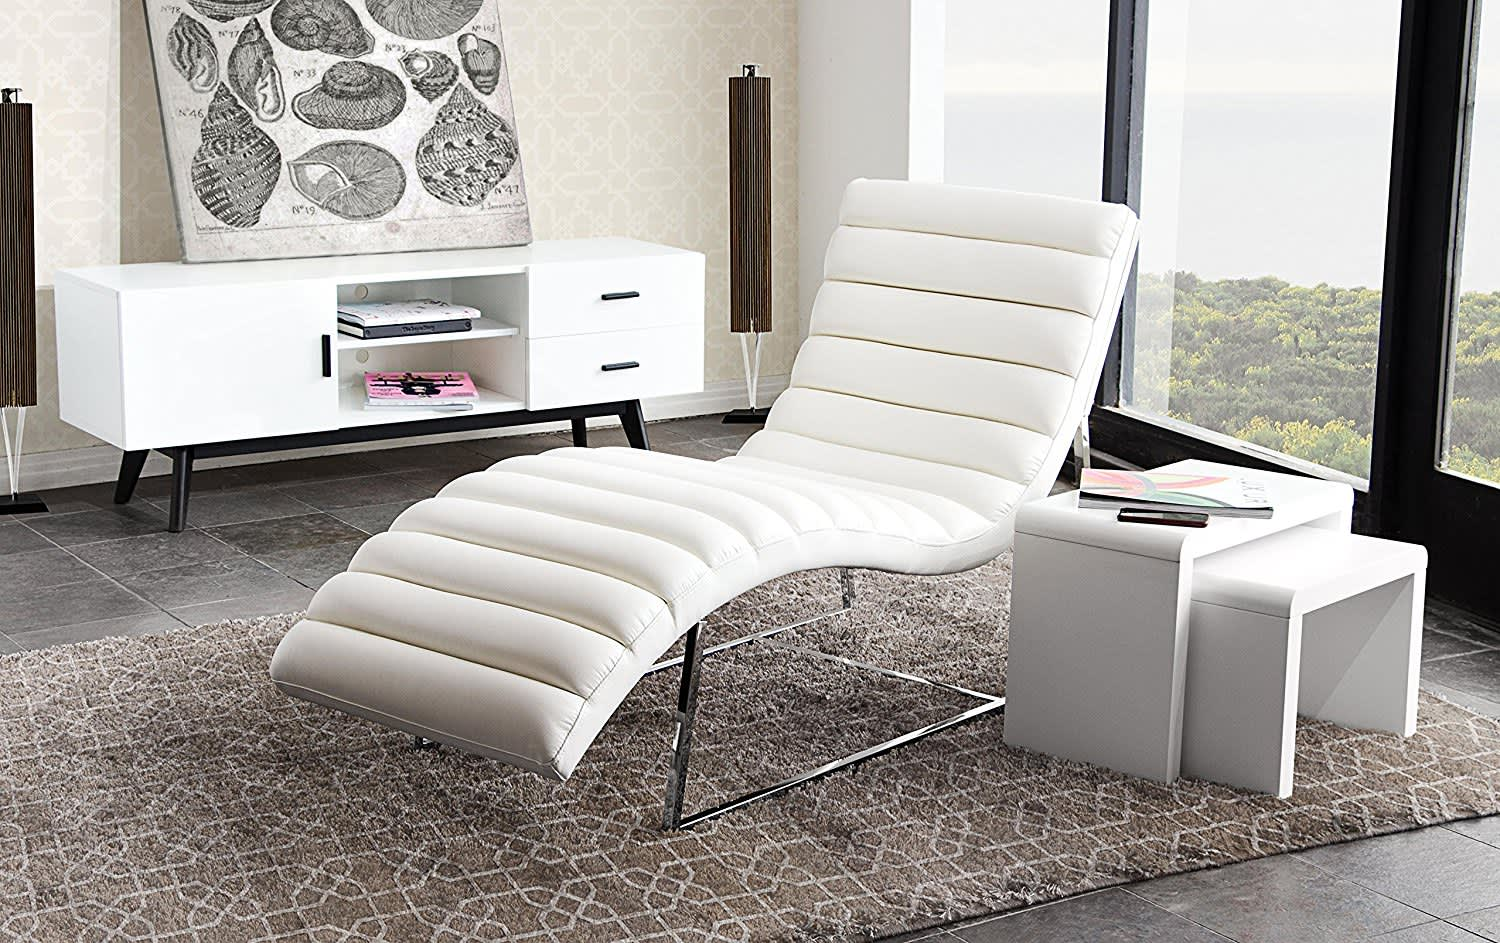 12 of the Best Looking Modern Chaise Lounges | Apartment Therapy